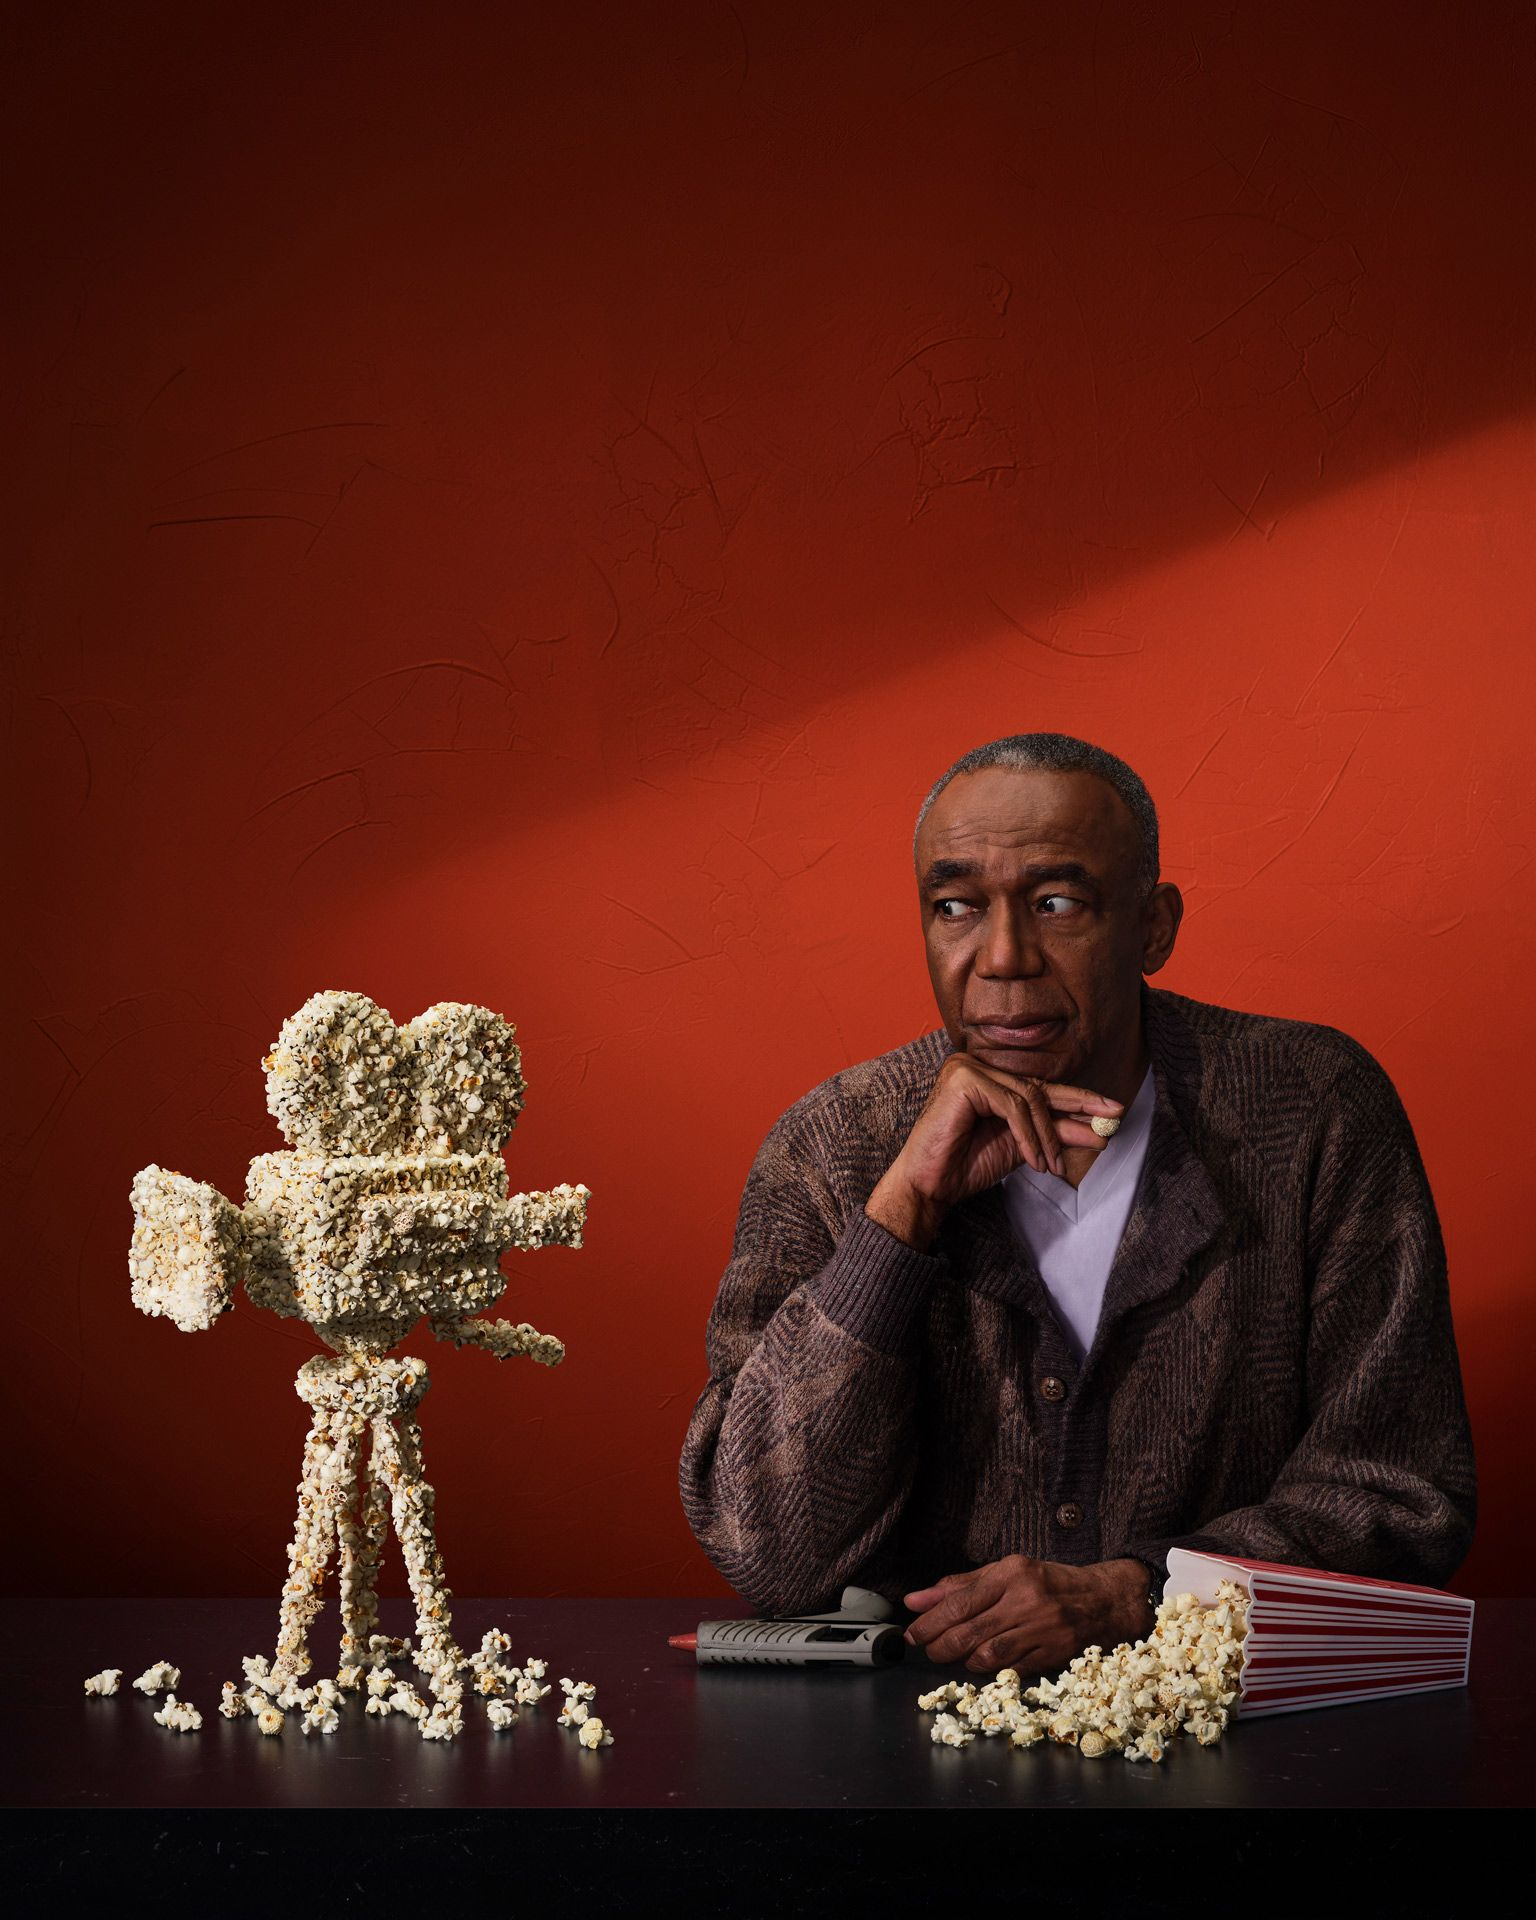 Actor who sculpted a camera with pop corn is staring at his sculpture with his glue gun in front of a red background.